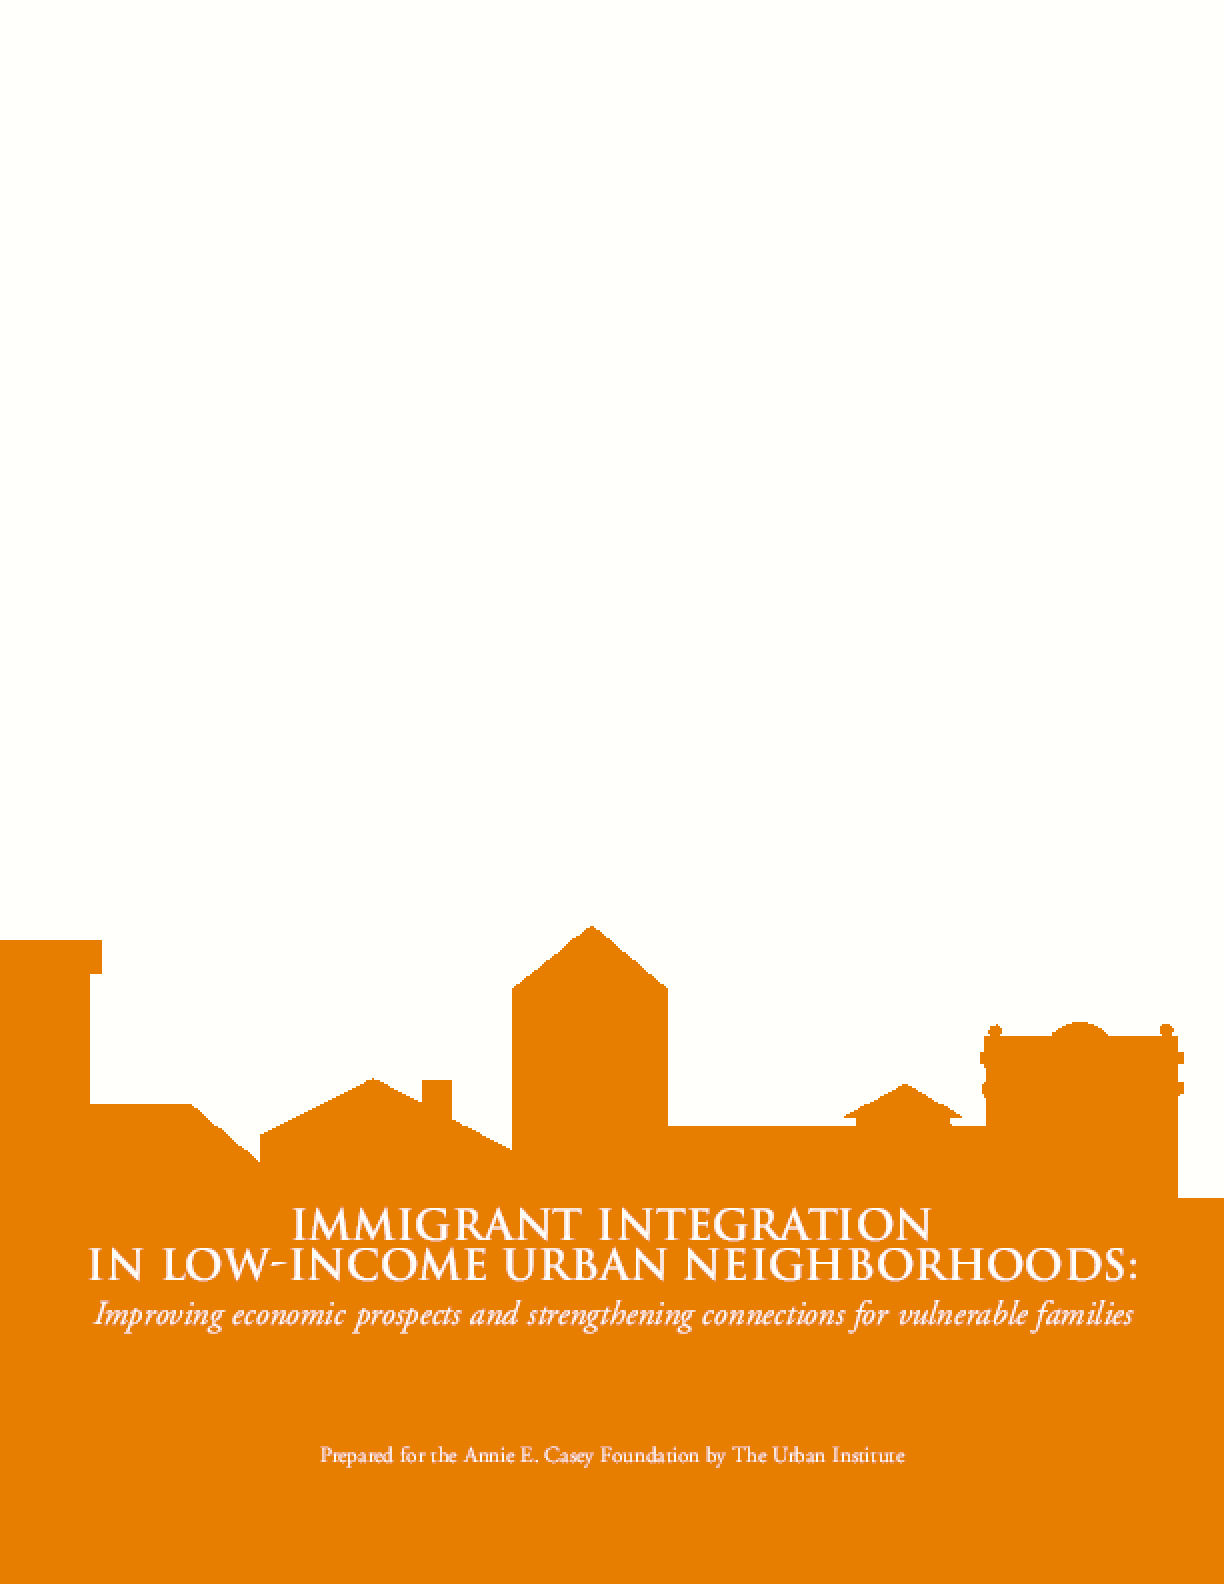 Immigrant Integration in Low-Income Urban Neighborhoods: Improving Economic Prospects and Strengthening Connections for Vulnerable Families